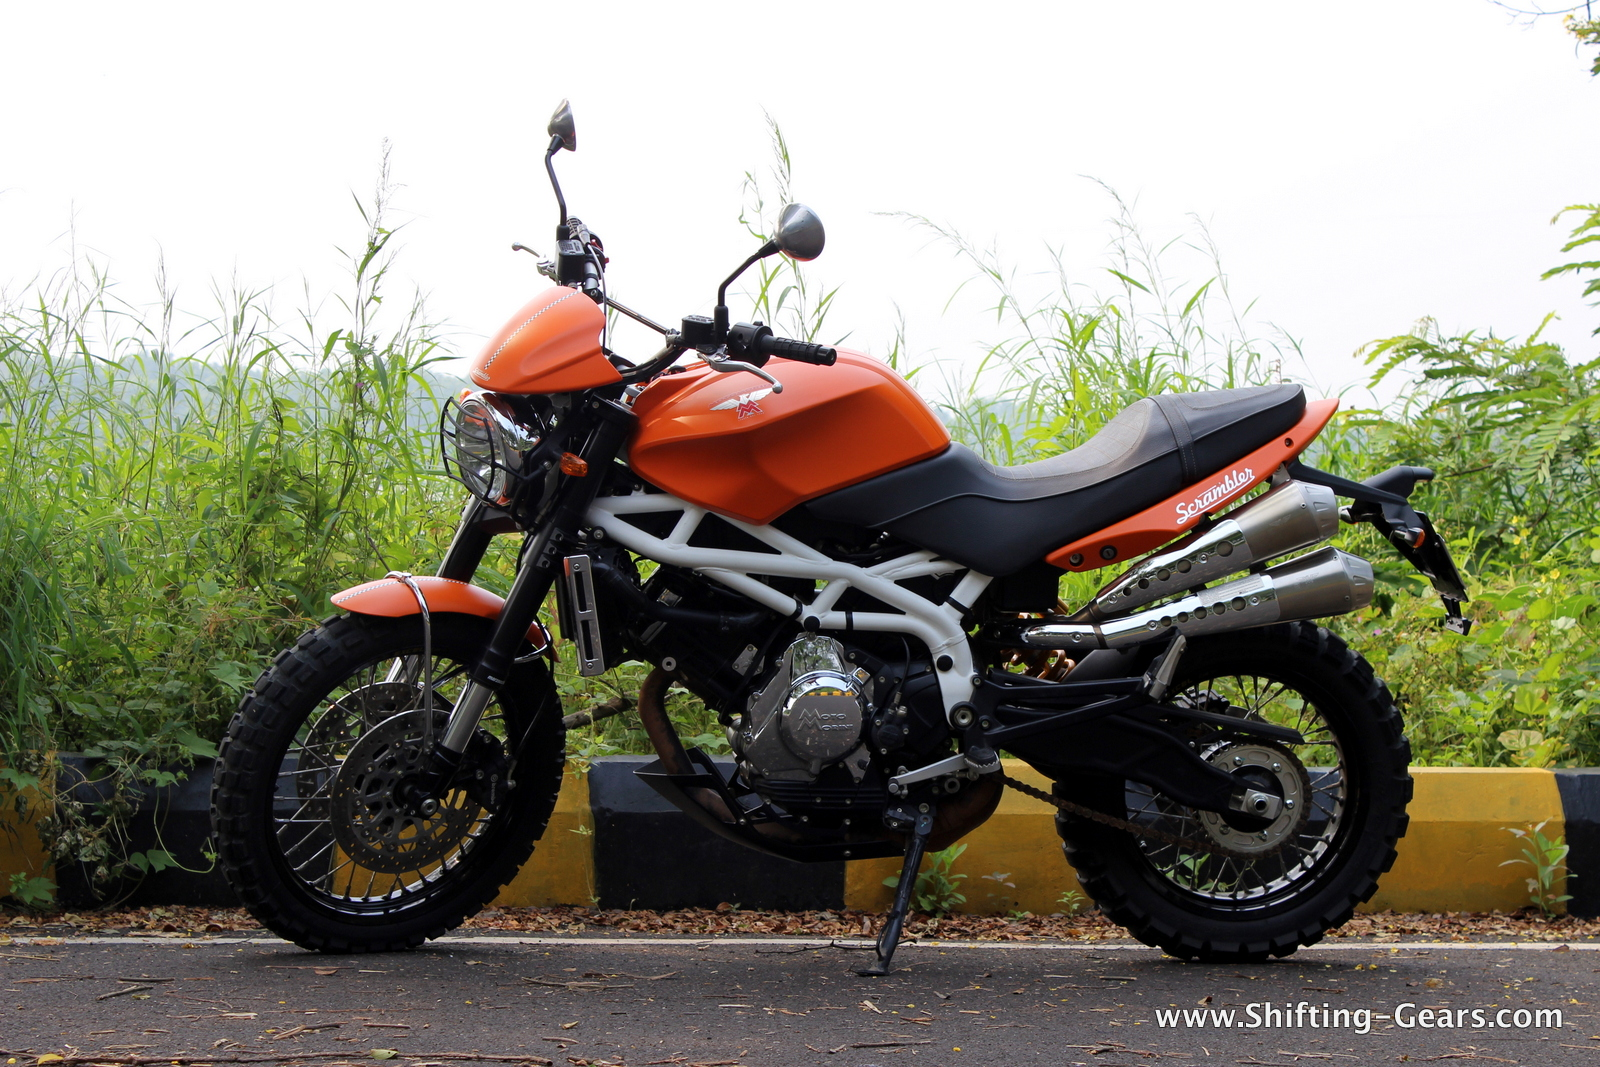 The Scrambler is very minimalistic in design, no bells and whistles